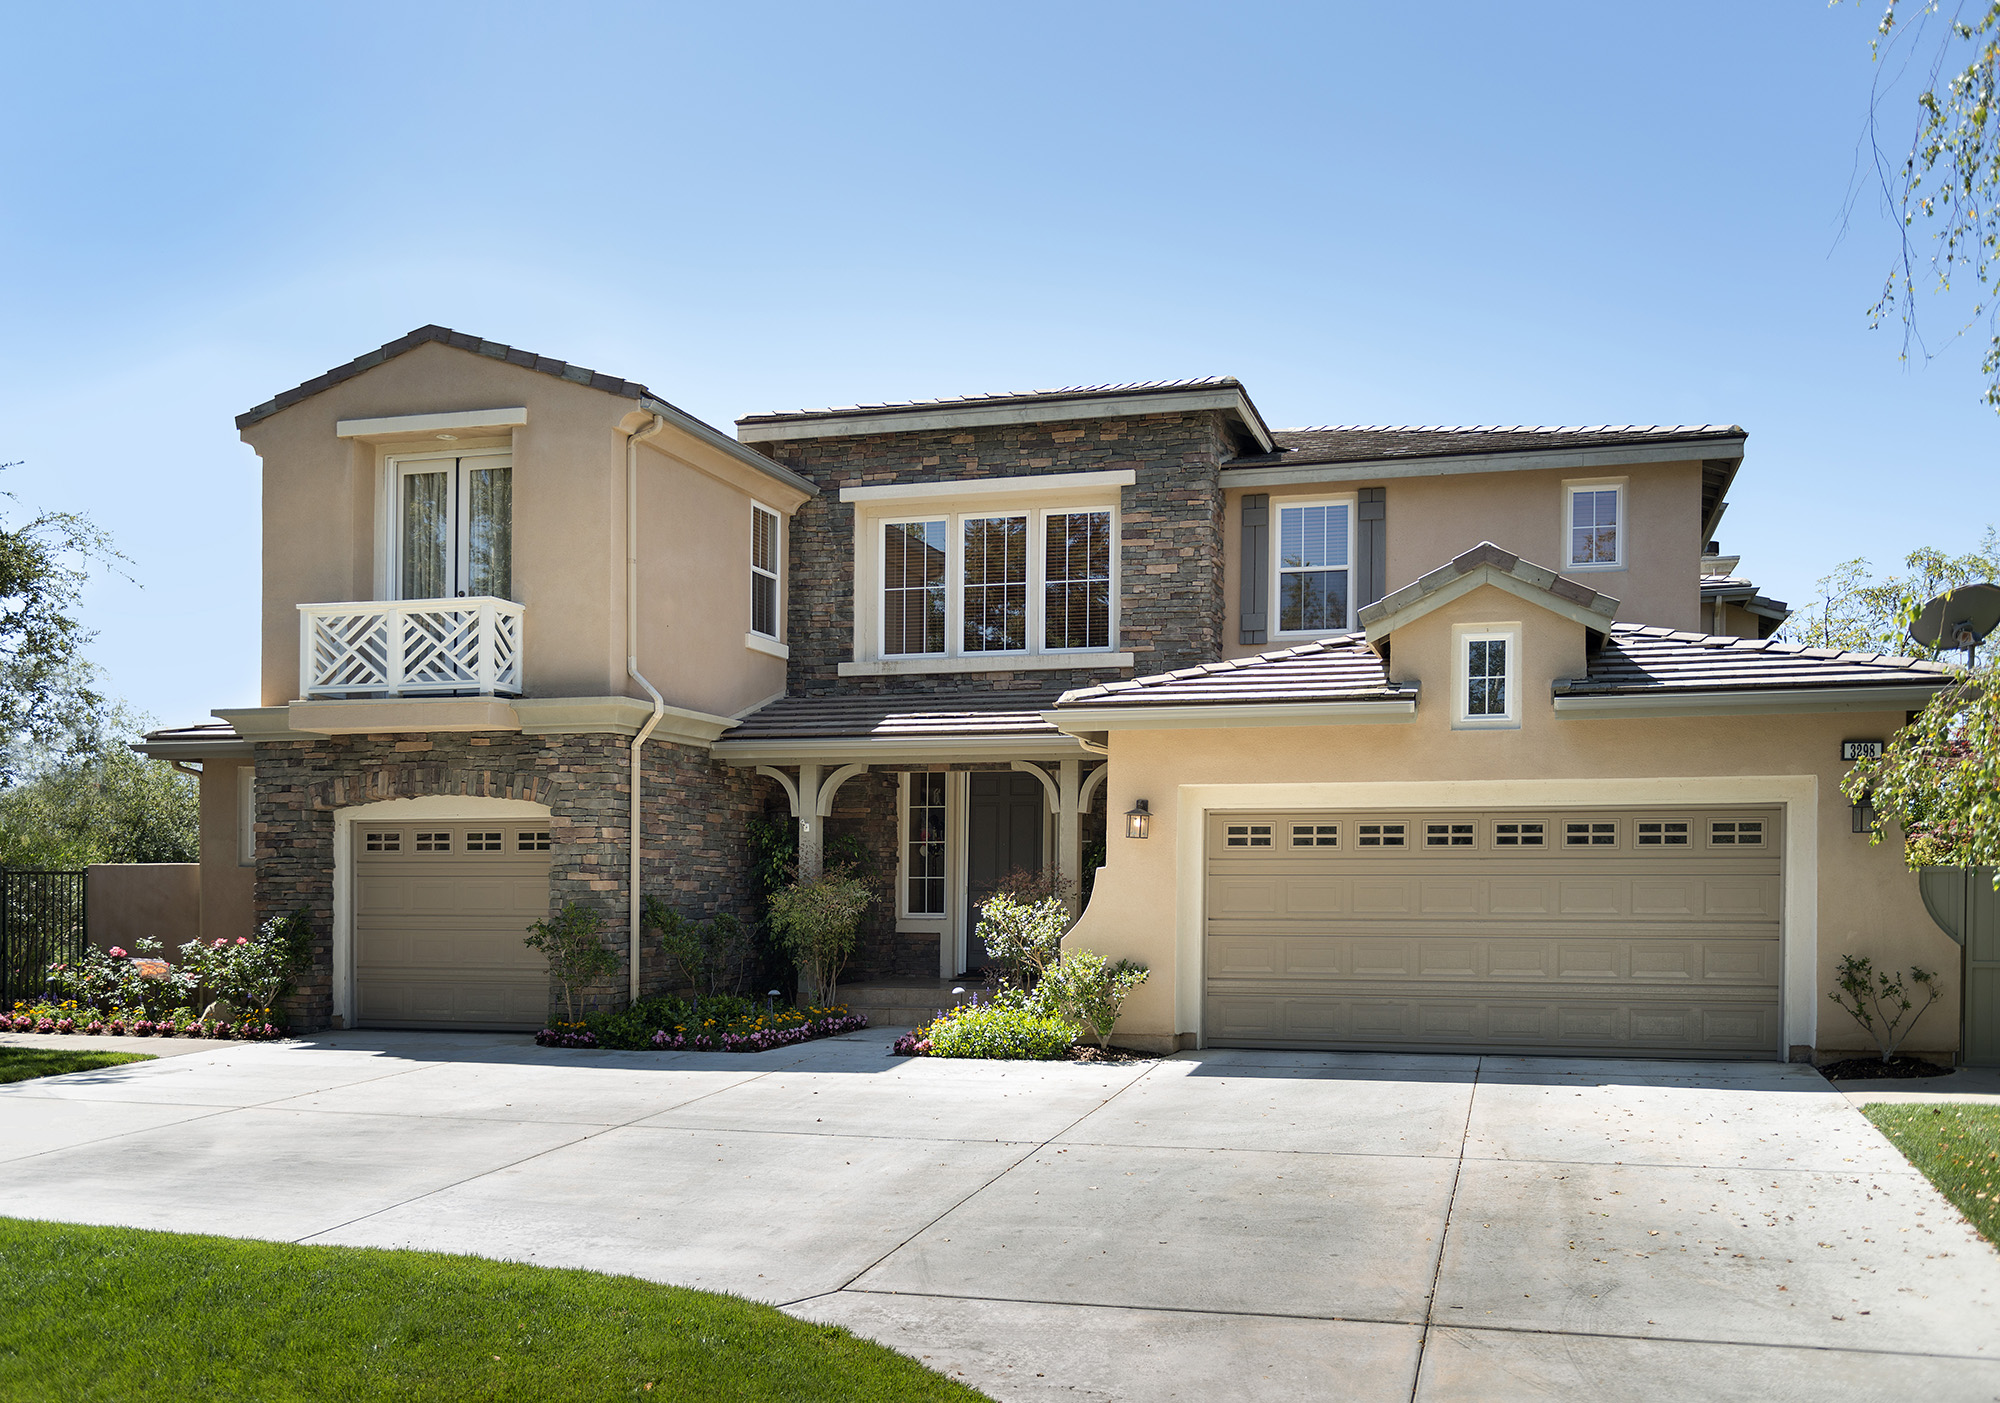 3298 Windridge Ave Thousand Oaks